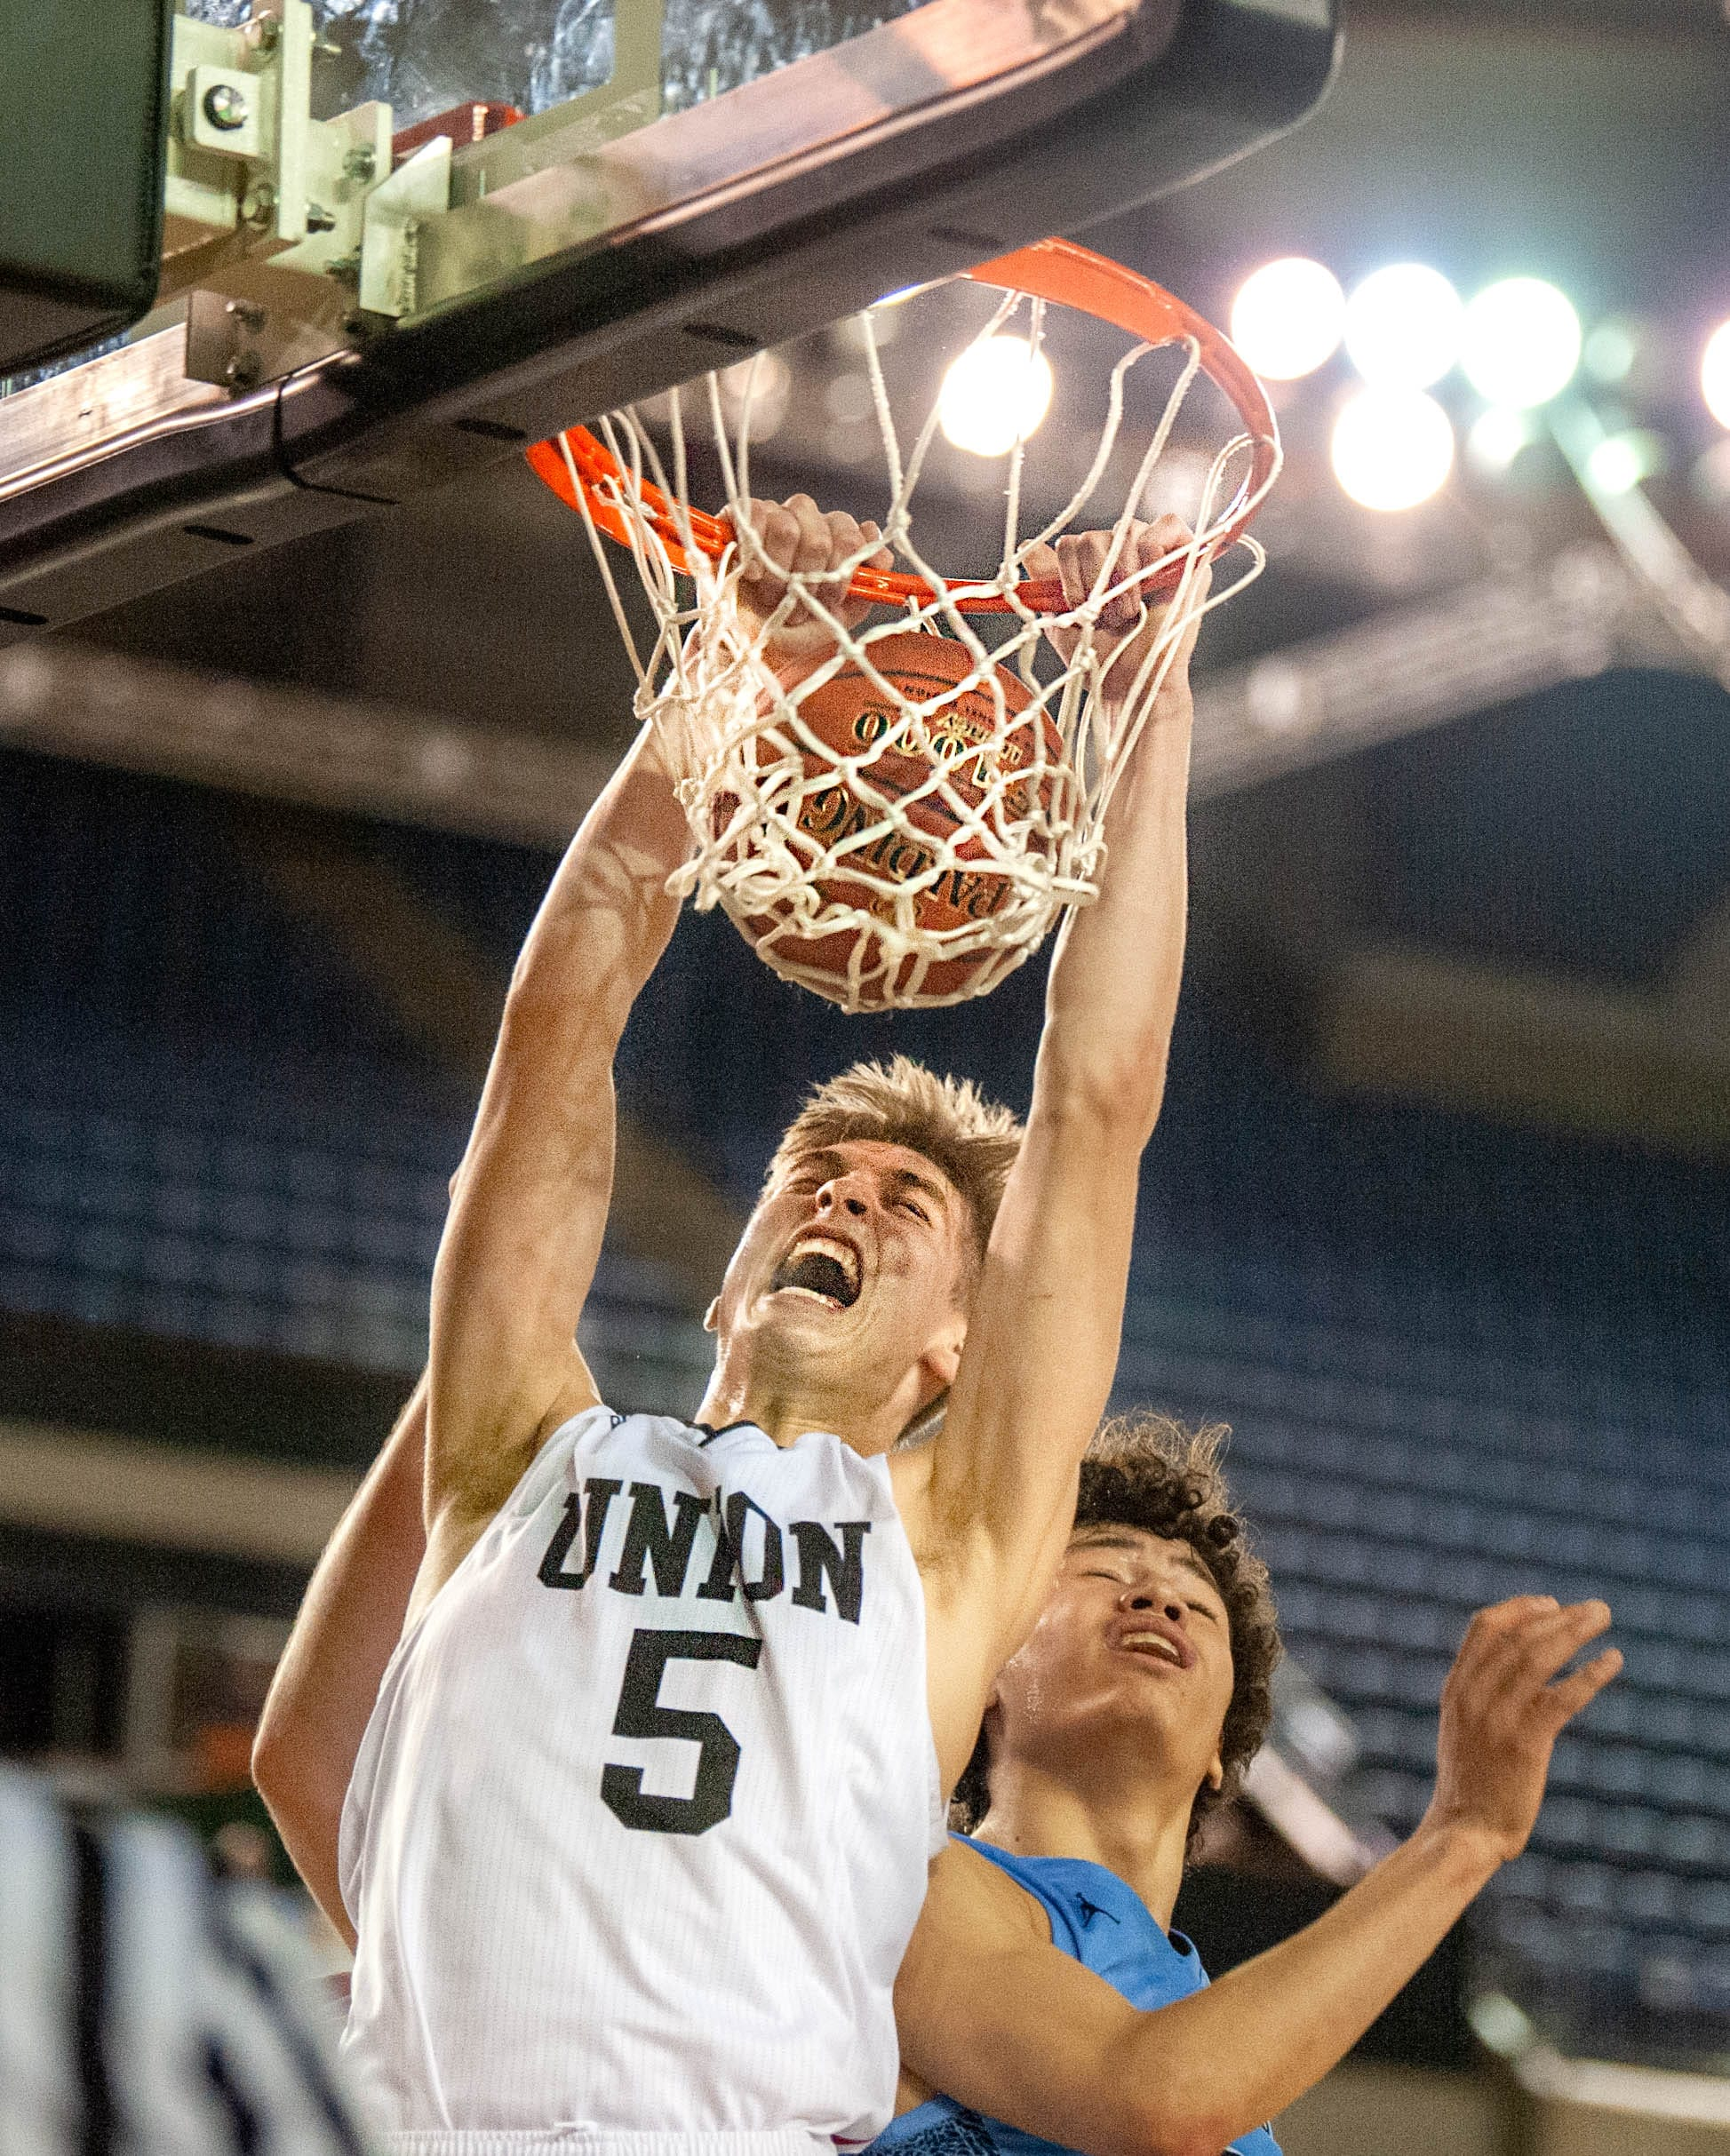 Union's Tanner Toolson dunks the ball late in the fourth quarter of a 4A State semifinal game on Friday at the Tacoma Dome. Union lost 63-55. (Joshua Hart/The Columbian)